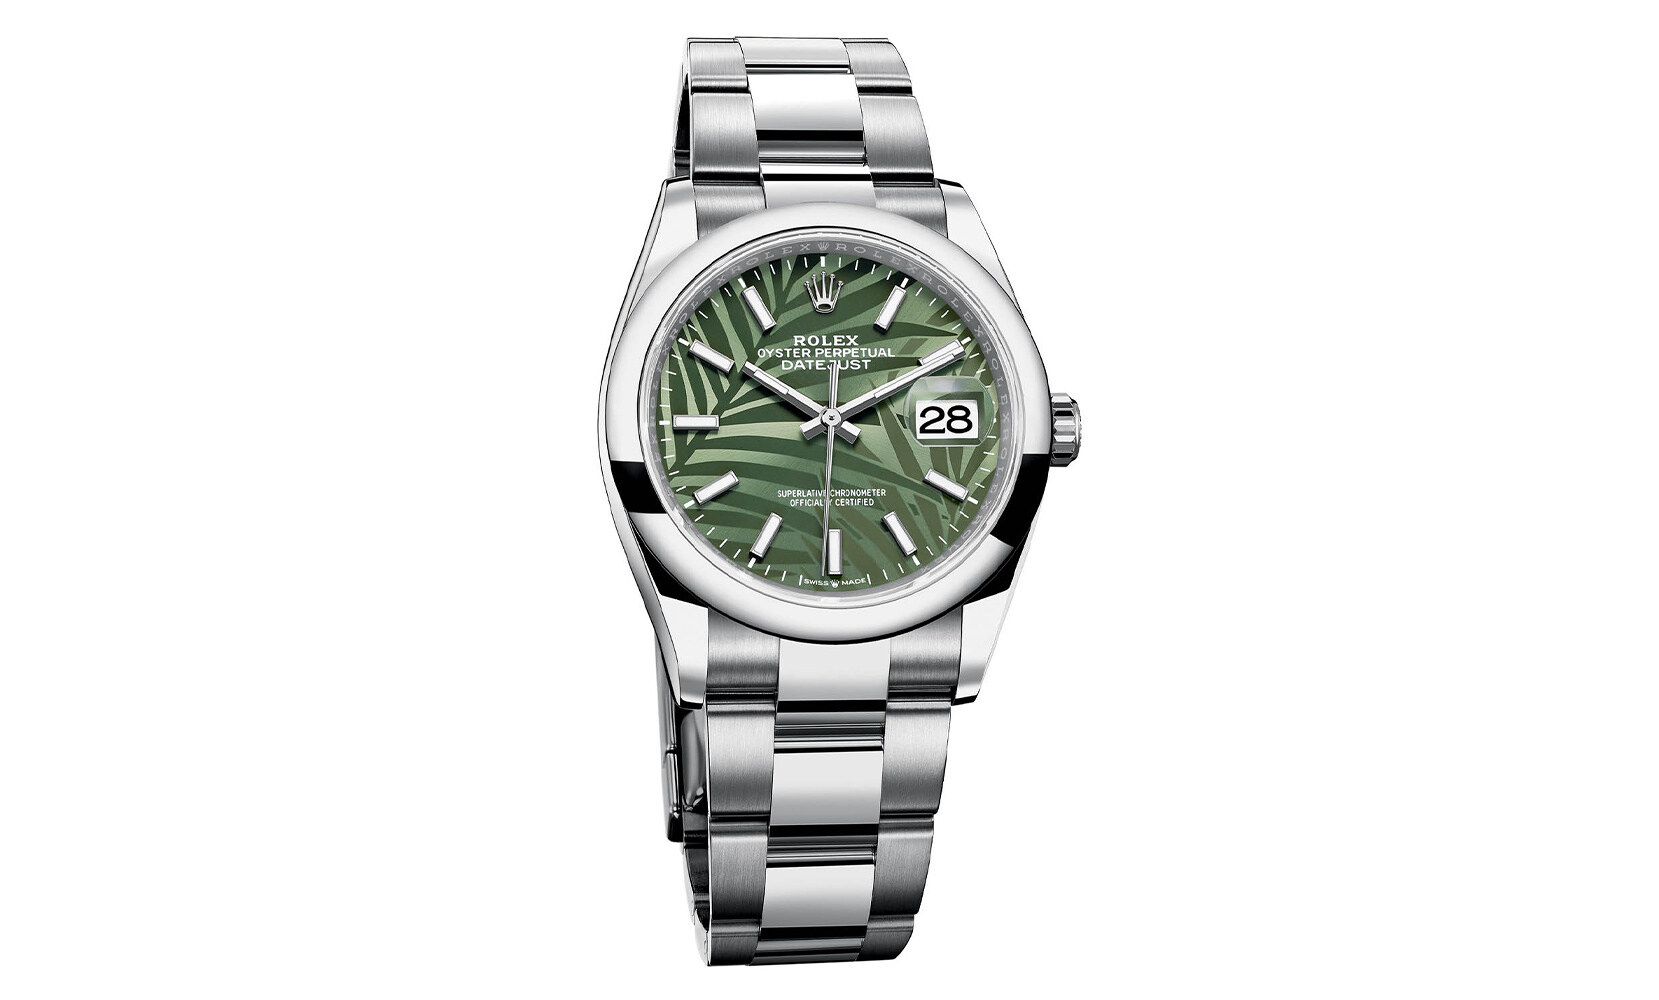 Rolex Datejust Palm Motif